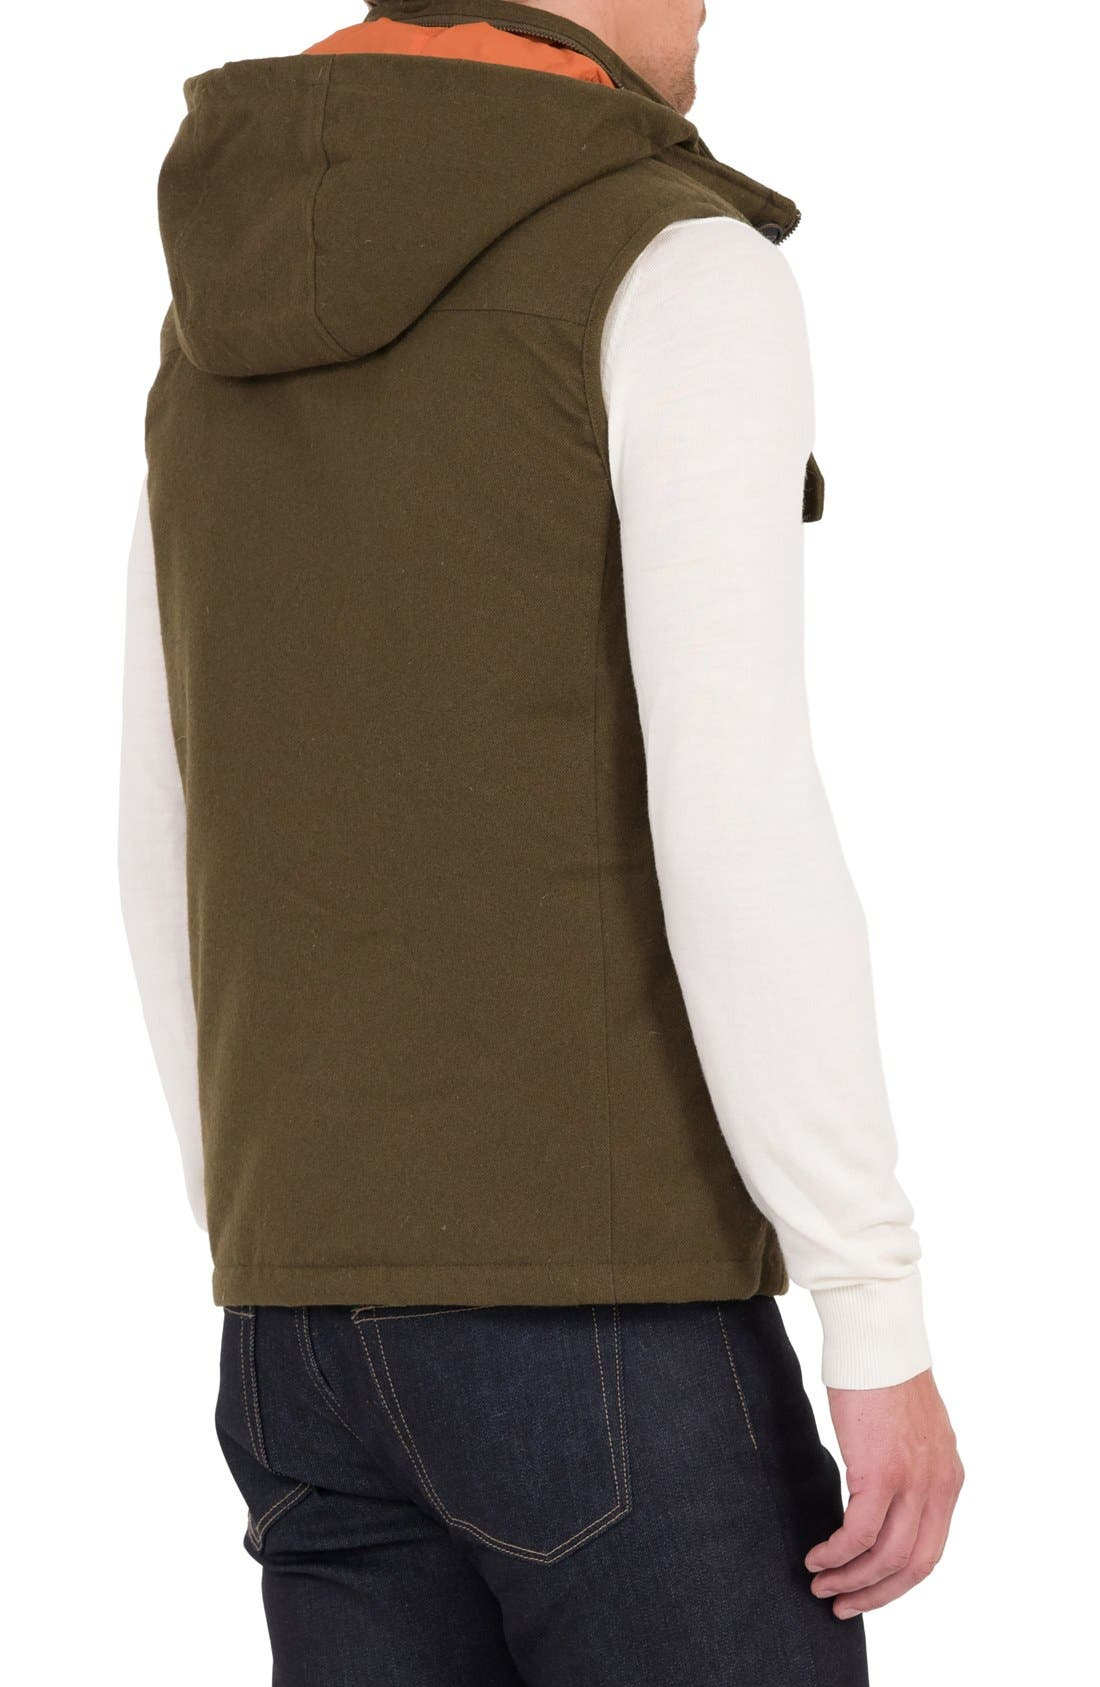 Water Resistant Down Vest with Stowaway Hood,                             Alternate thumbnail 2, color,                             317